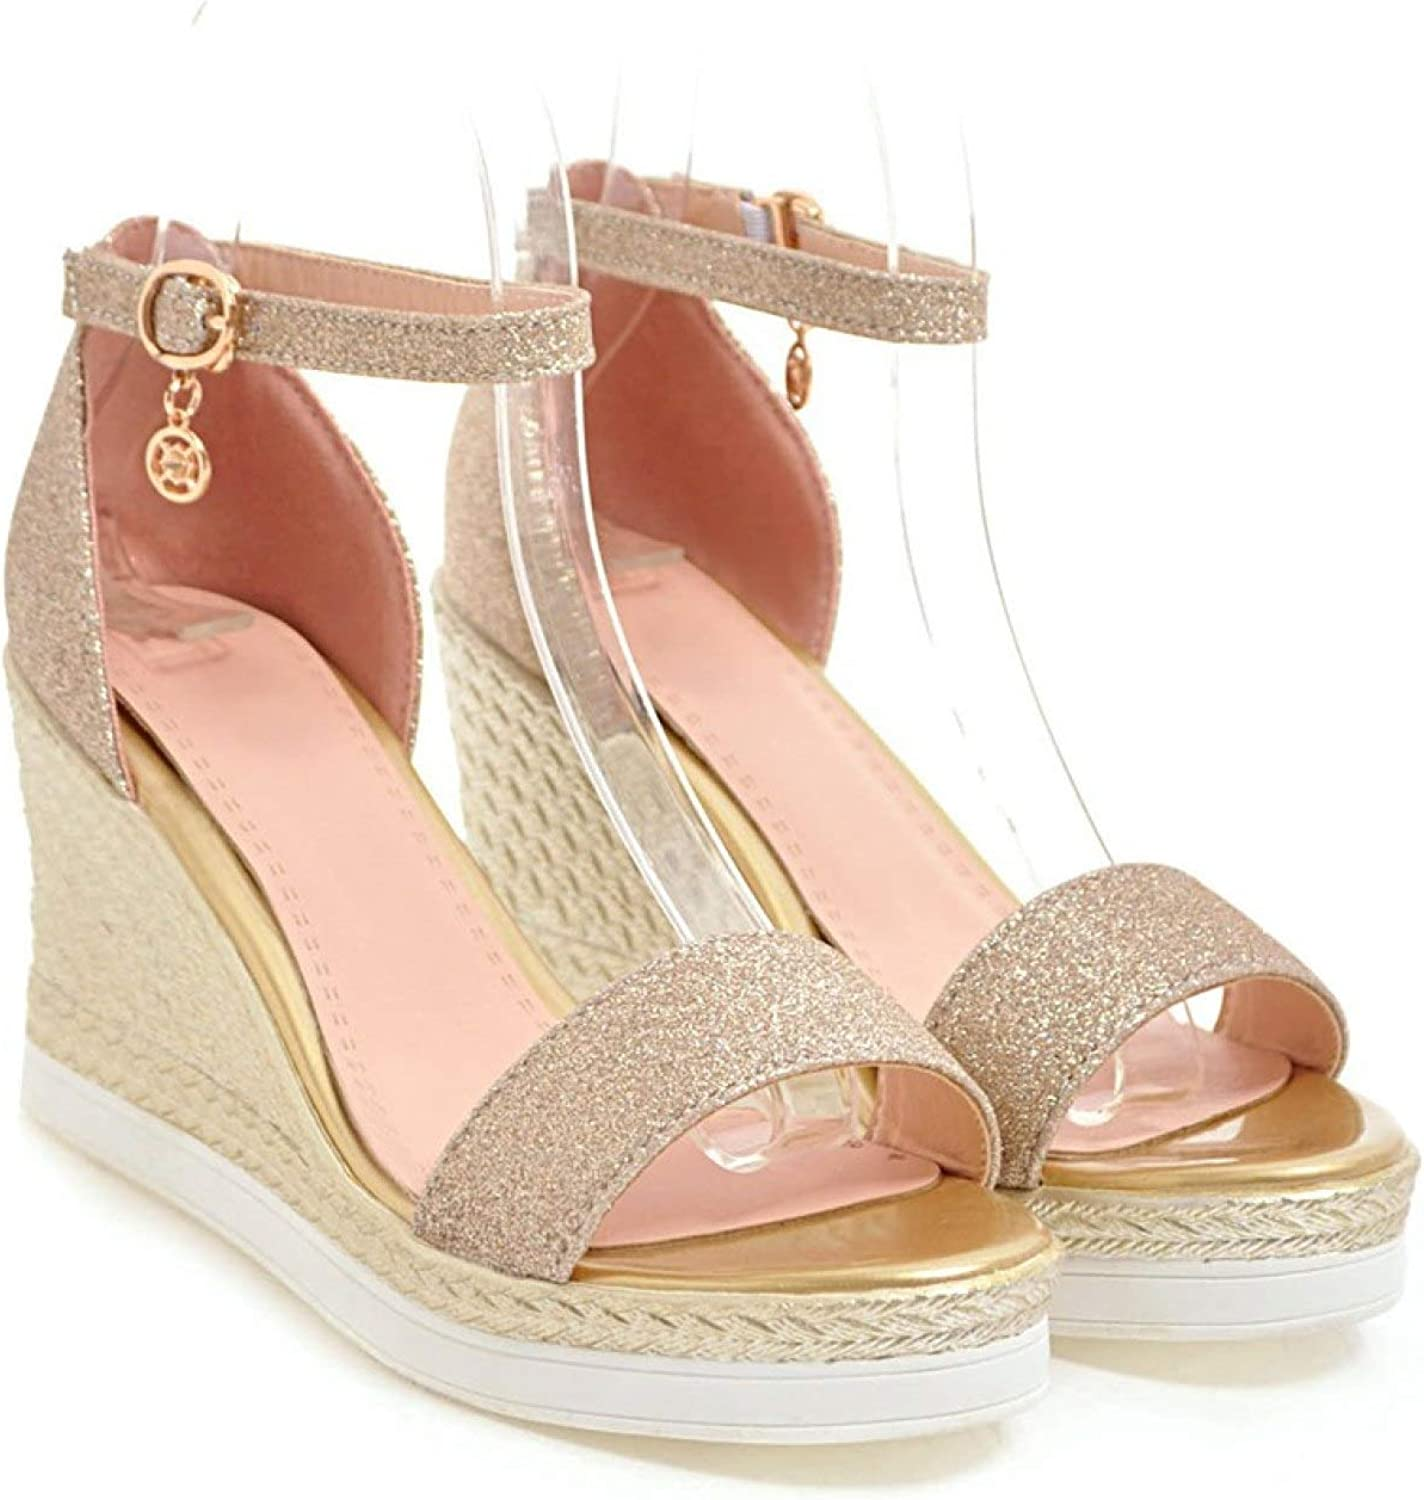 Women's Shiny Ankle Strap Sale price Platform Fa Free Shipping New Sandals Ladies Heels Wedge